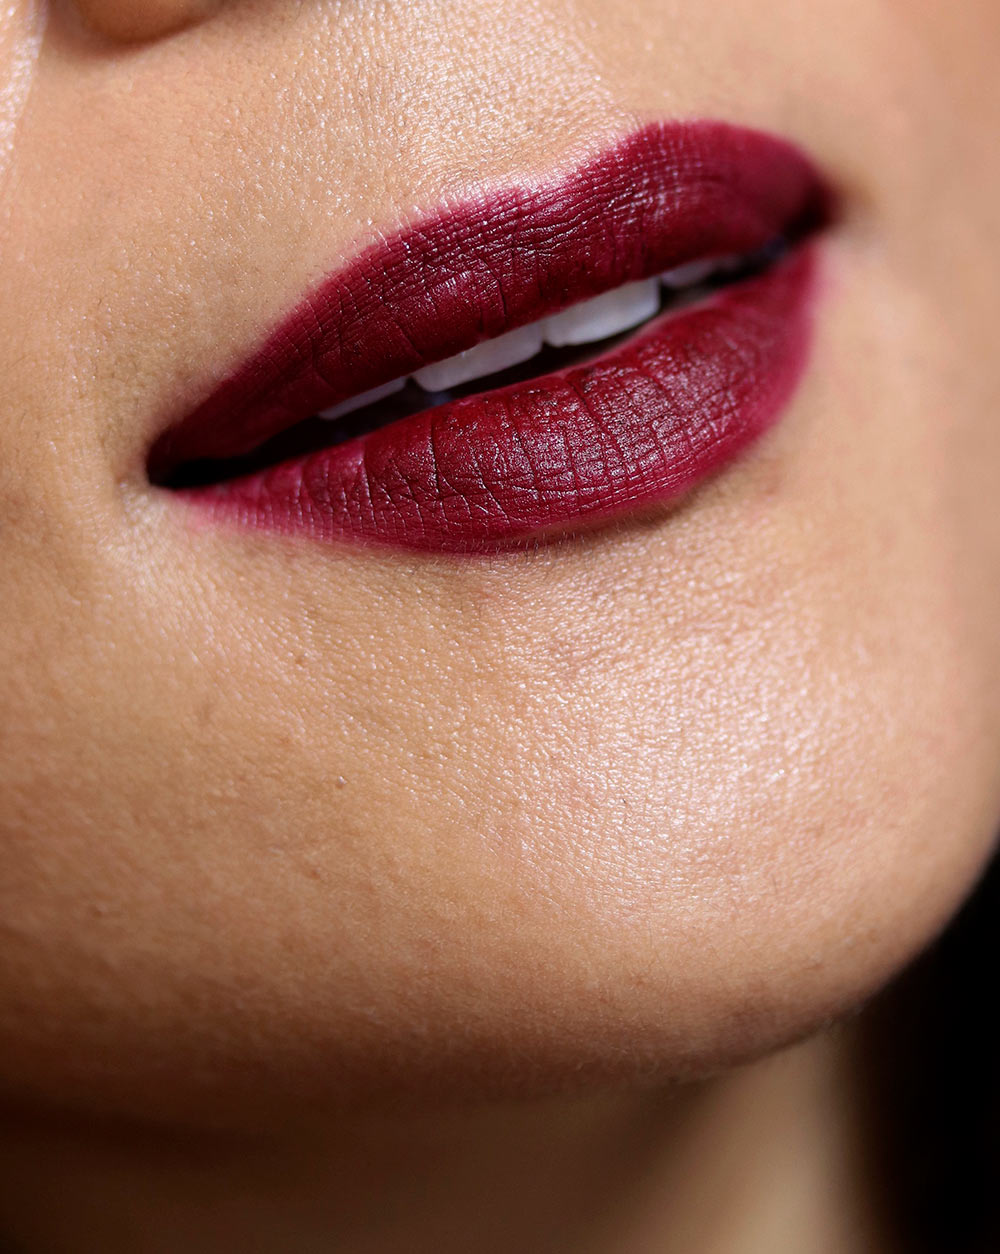 tom ford black dahlia lipstick swatch